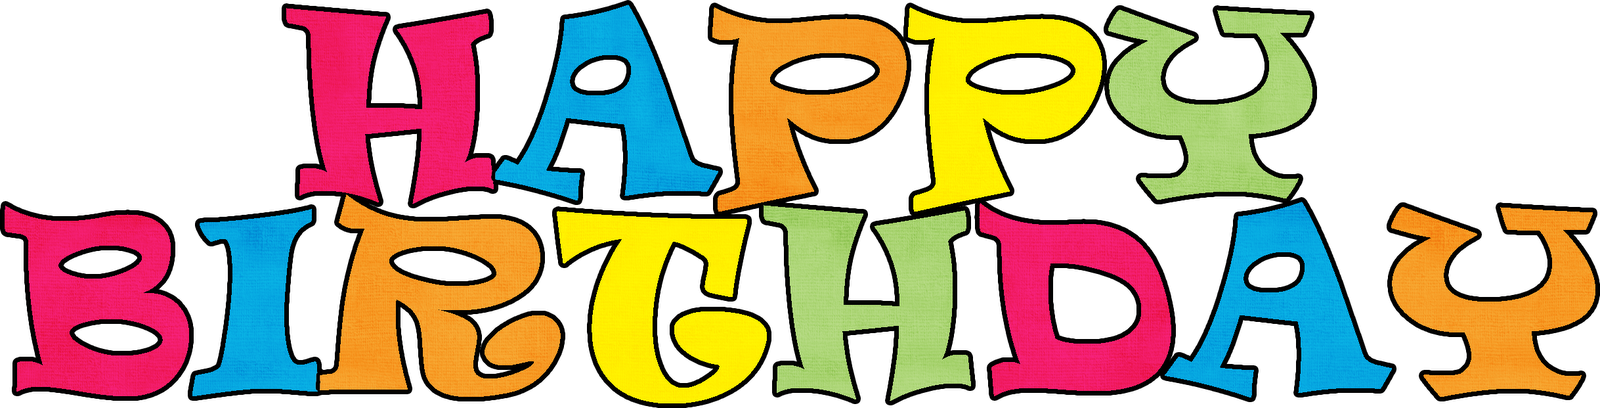 Free birthday clipart animated clip art black and white download Birthday PNG HD Animated Transparent Birthday HD Animated.PNG Images ... clip art black and white download